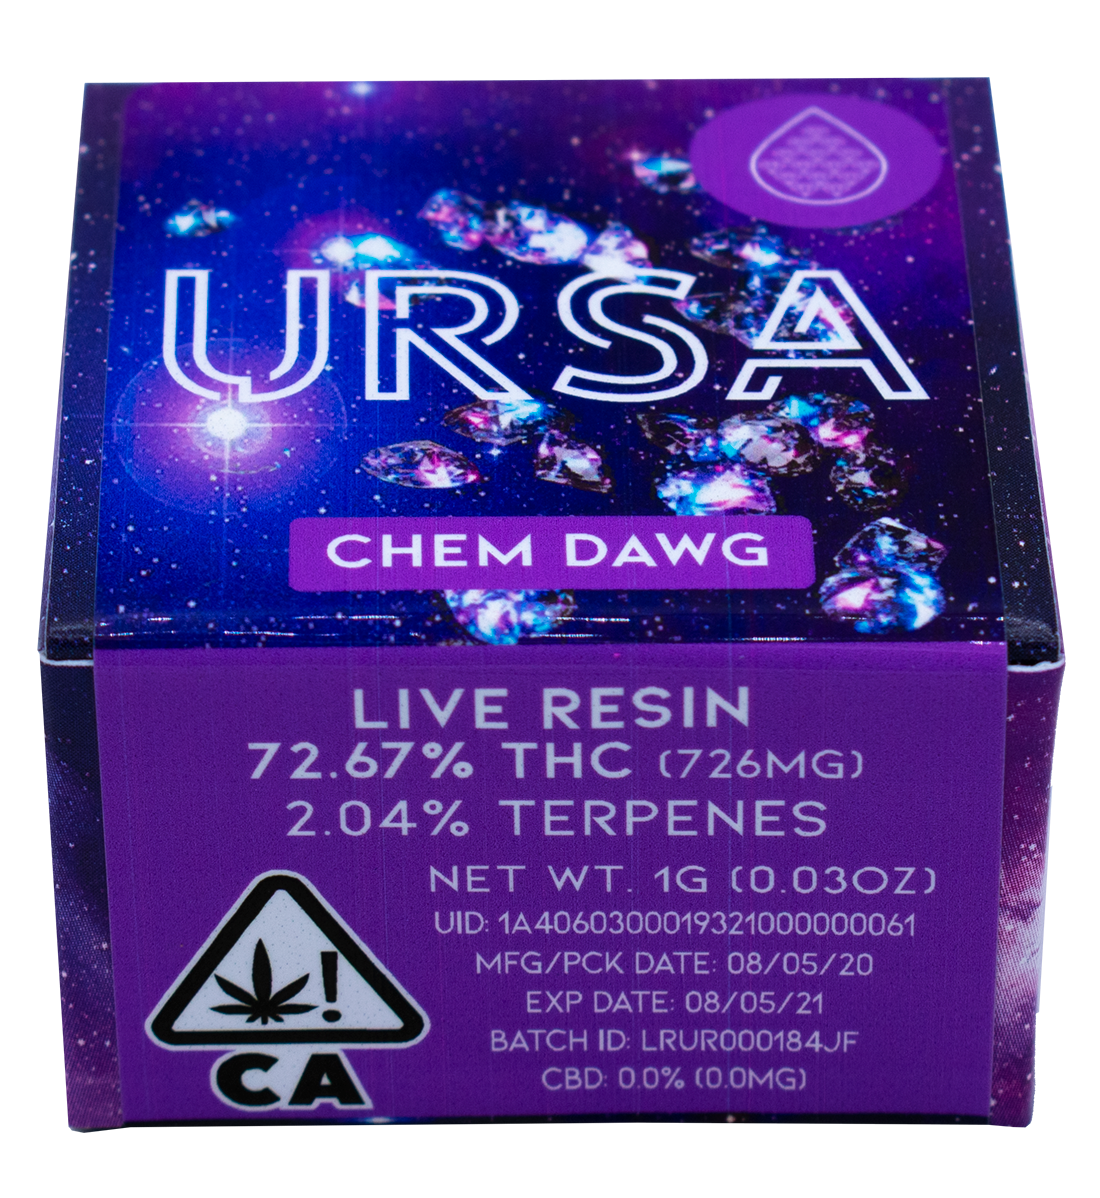 URSA Purple Box vs blue box what is the difference?